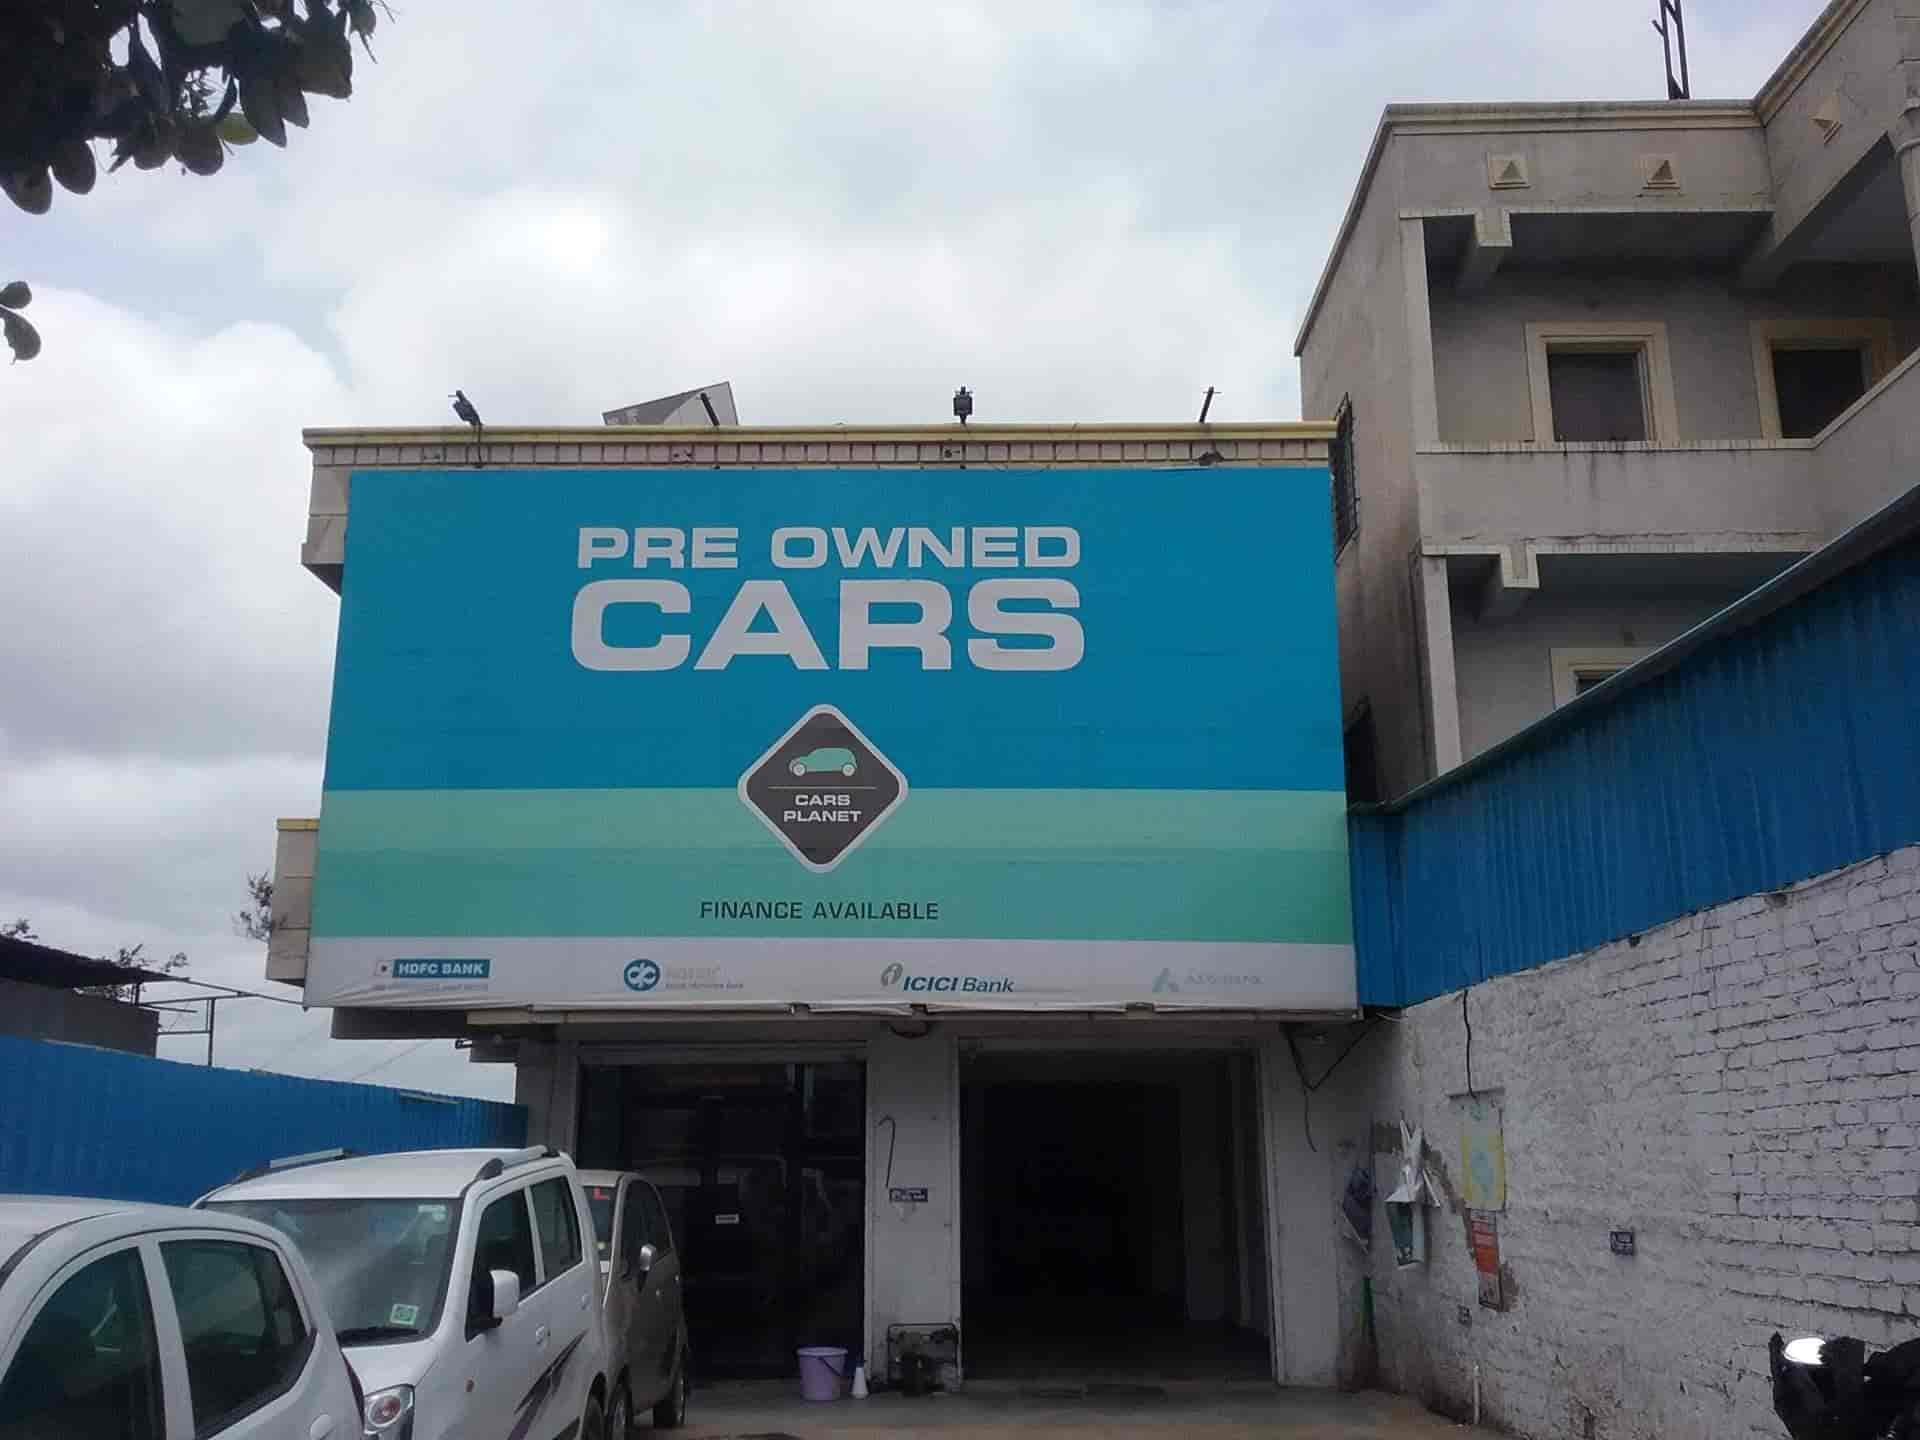 Cars Planet Preowned Cars Photos Baner Pune Pictures Images